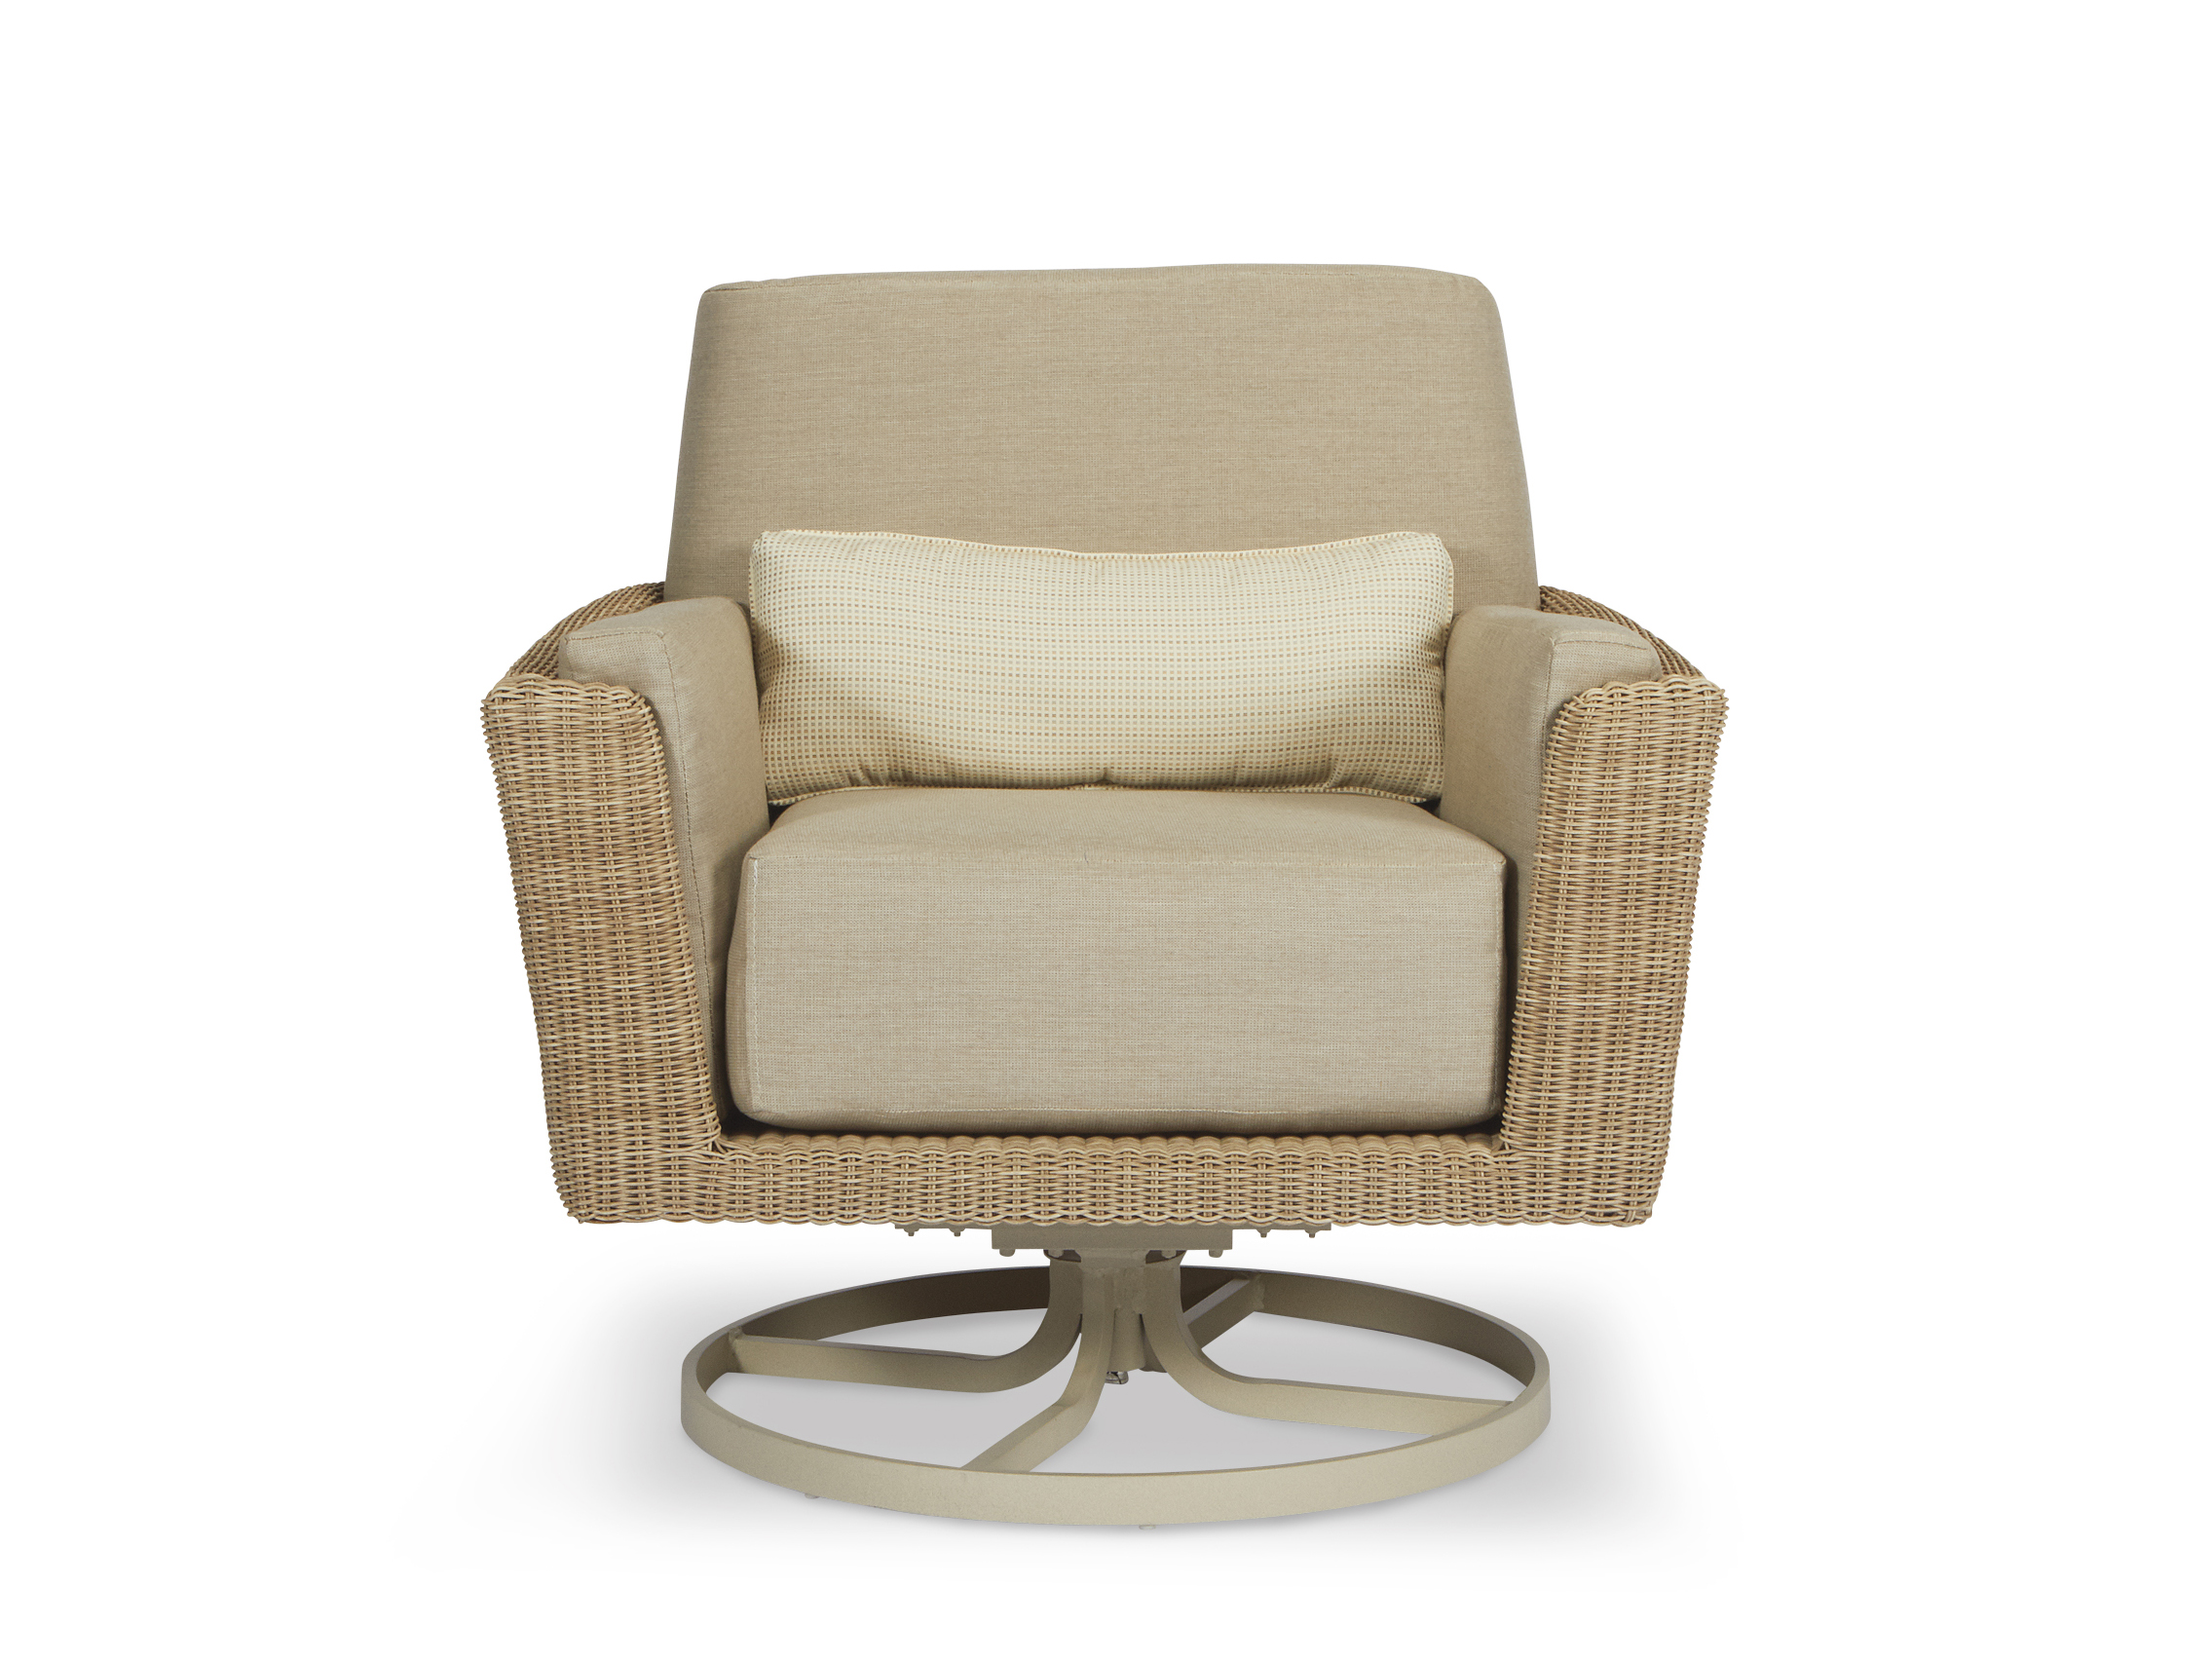 Banyan Bay Action Swivel Tilt Lounge Chair Outdoor Chairs Chaises Winston Furniture Robb Stucky